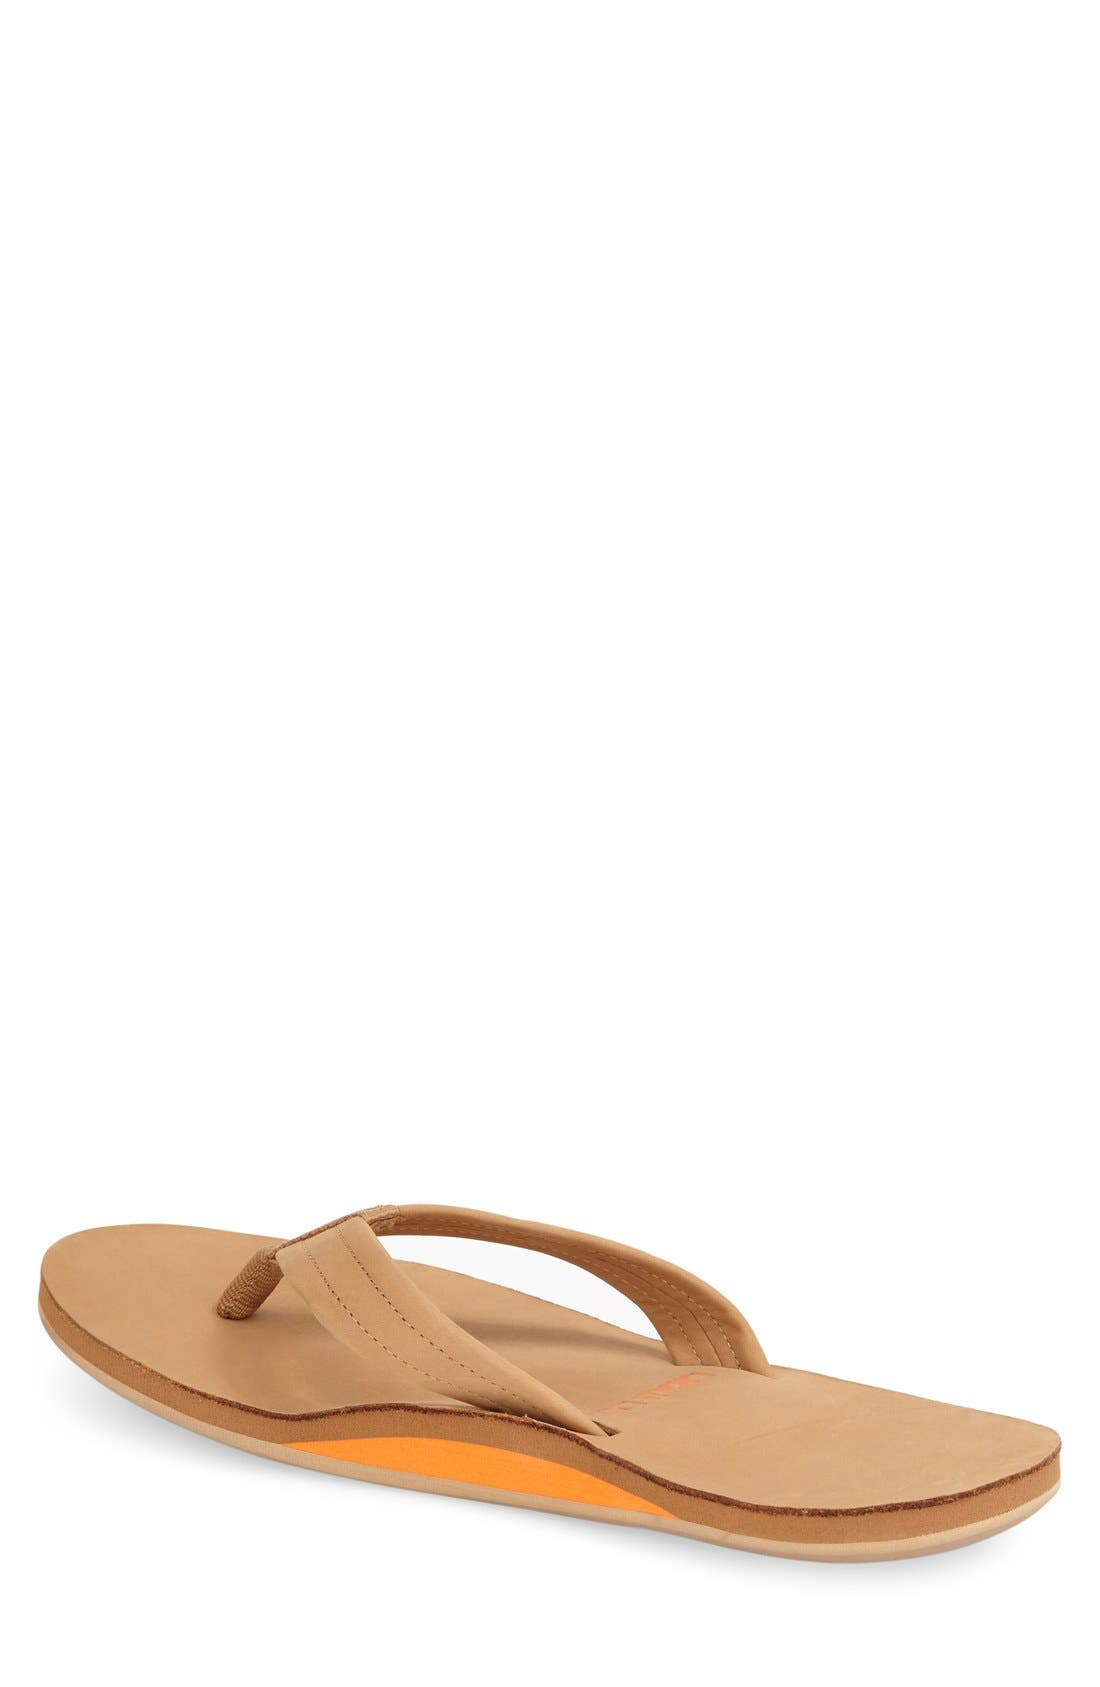 Fields Flip Flop,                             Alternate thumbnail 2, color,                             TAN/ ORANGE/ TAN